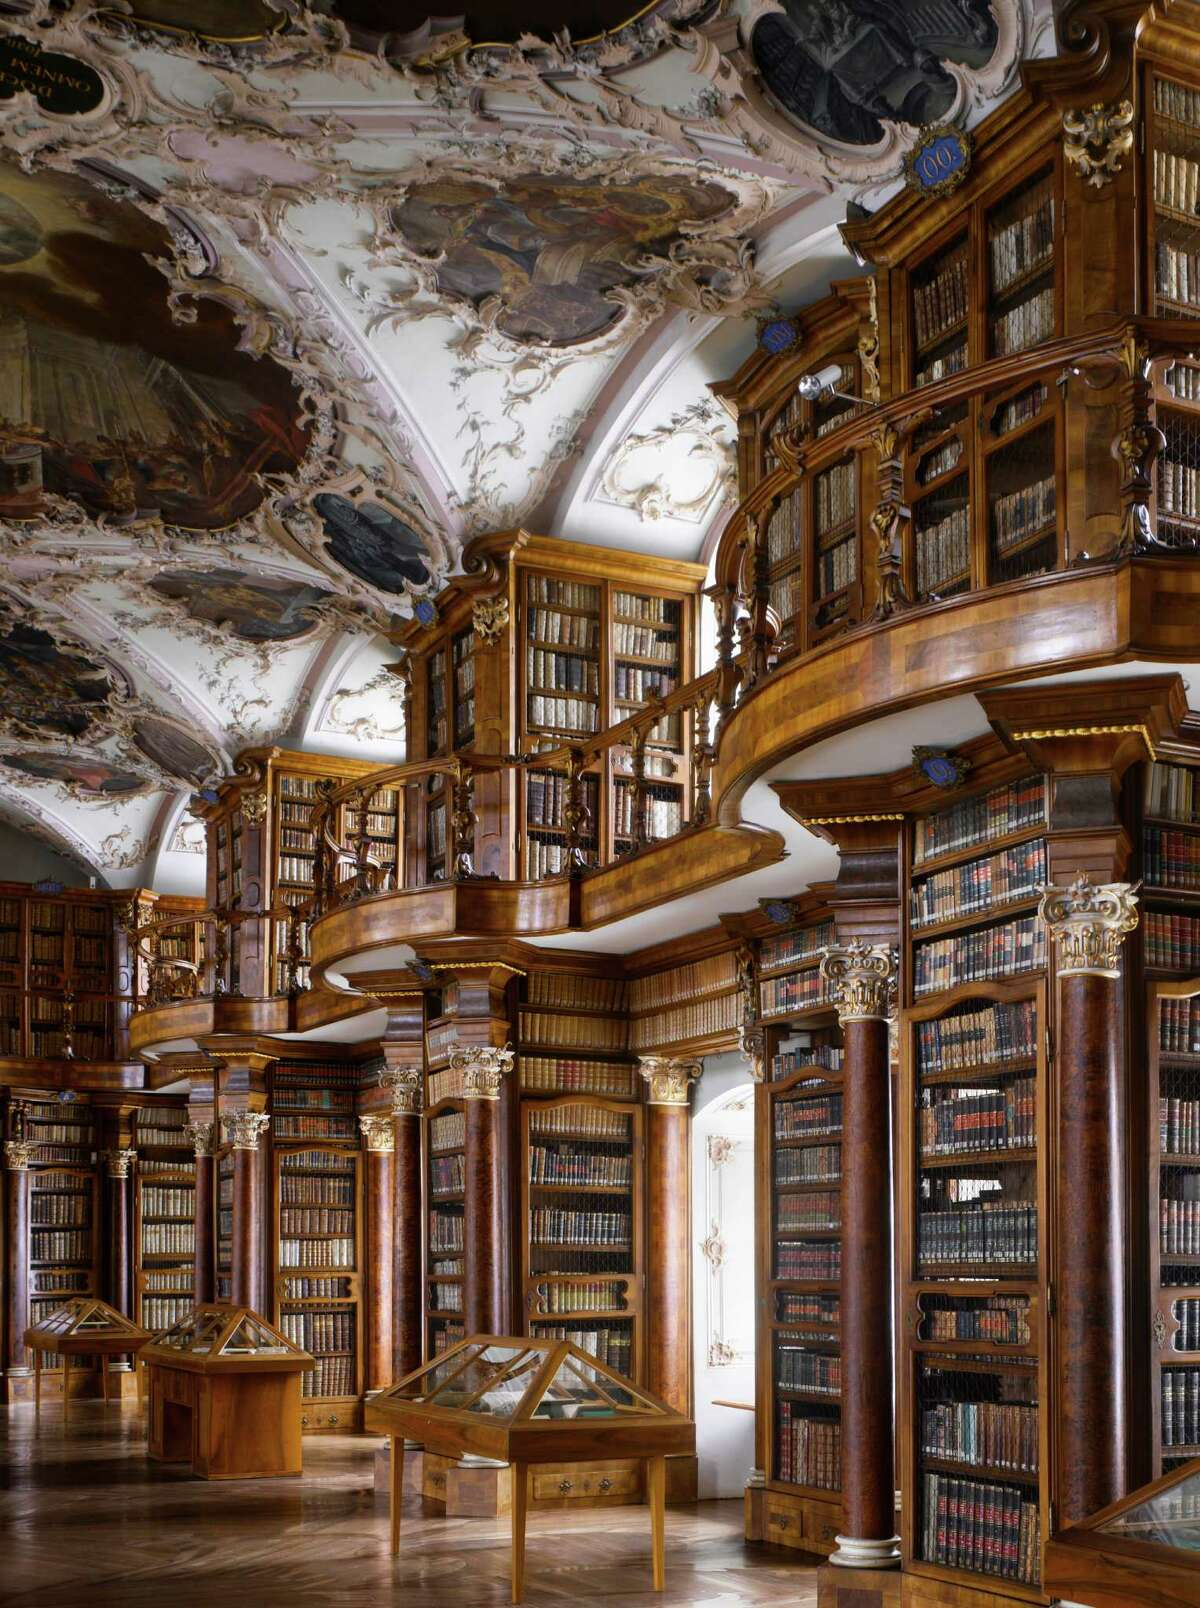 Abbey of St Gall Library, 1763. St Gallen, Switzerland. The library has many forms of decoration, including putti in niches above the cases, representing the mechanical disciplines and the fine arts.From